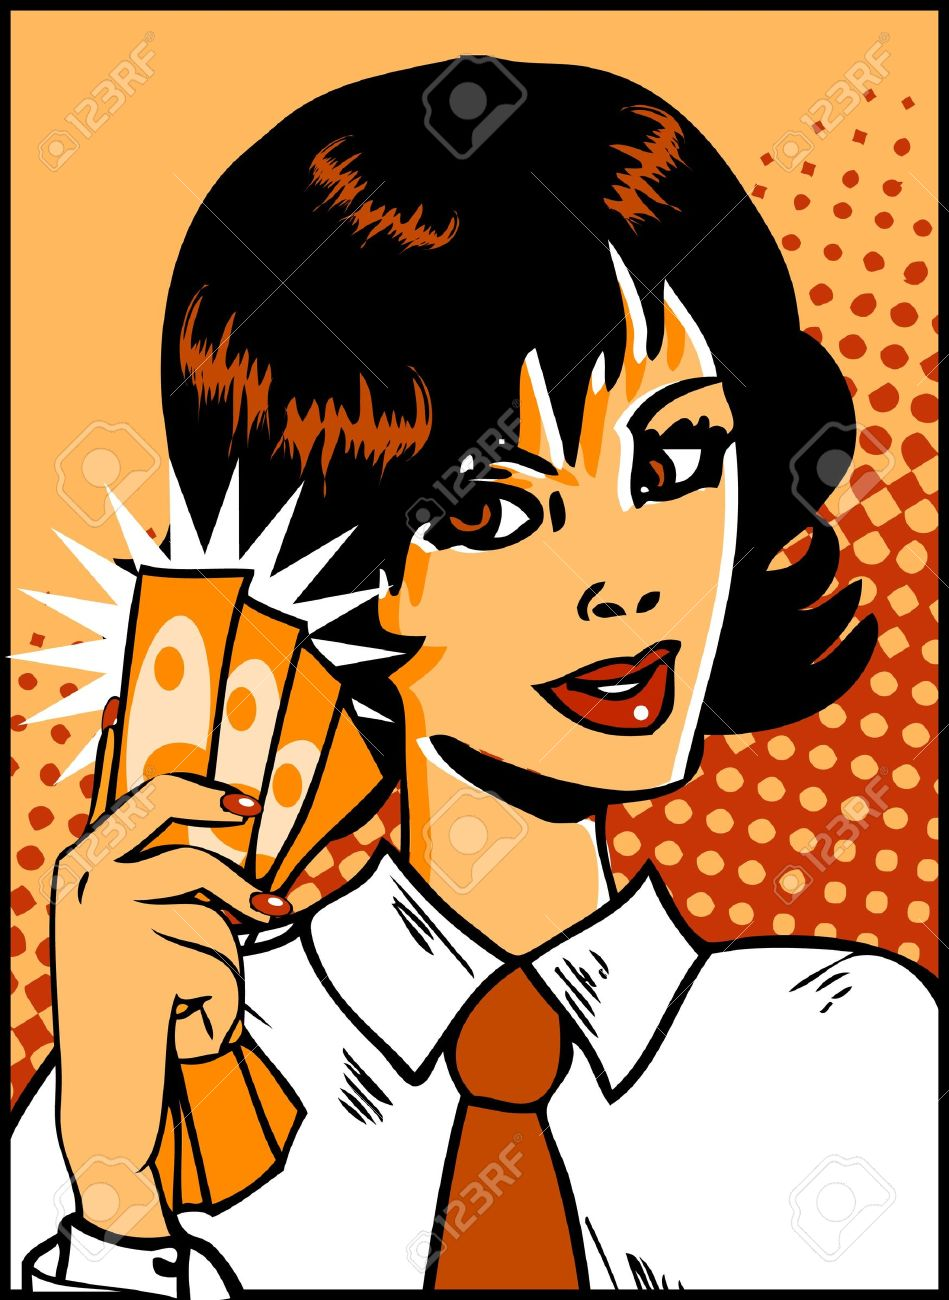 9631866-Pop-Art-Business-Woman-with-money-in-hand-Vintage-Comic-Background-Stock-Vector